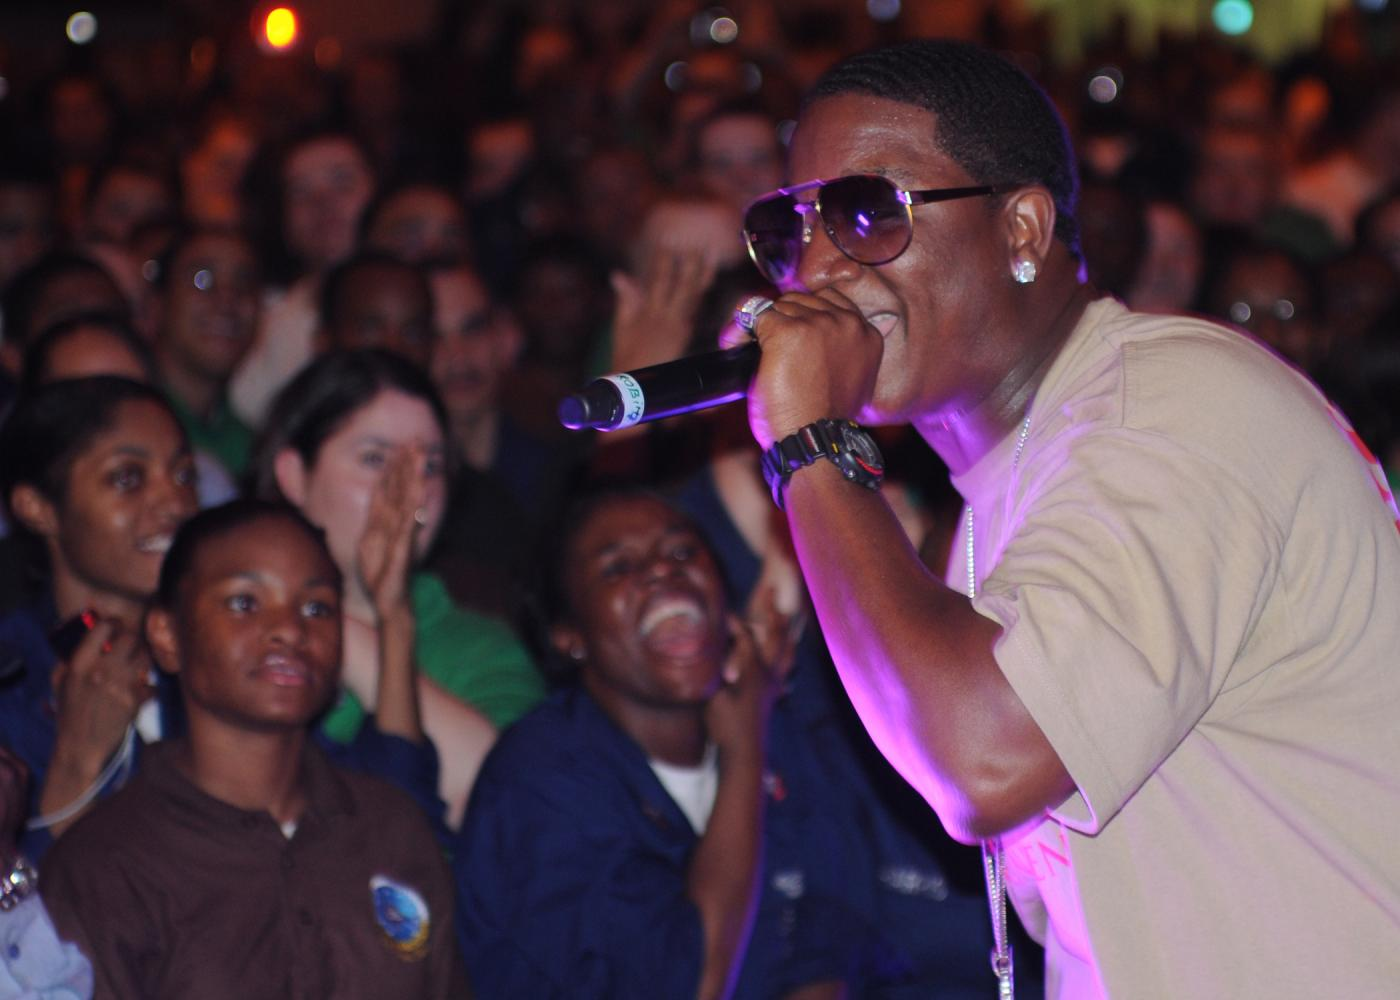 Rapper Yung Joc performs on the USS Dwight D. Eisenhower aircraft carrier. Photo courtesy of Wikimedia Commons